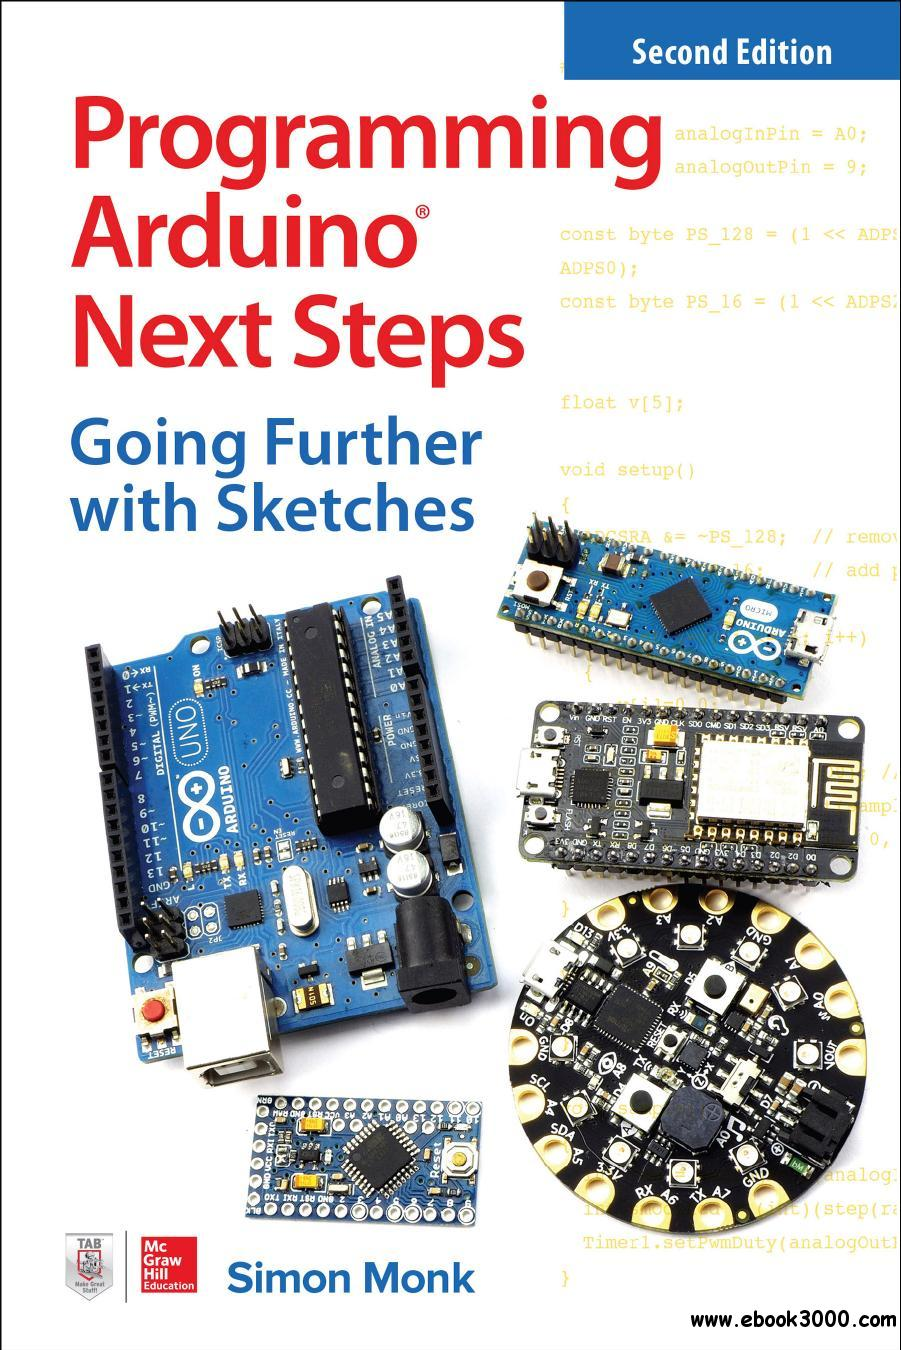 Programming Arduino Next Steps: Going Further with Sketches, 2nd Edition